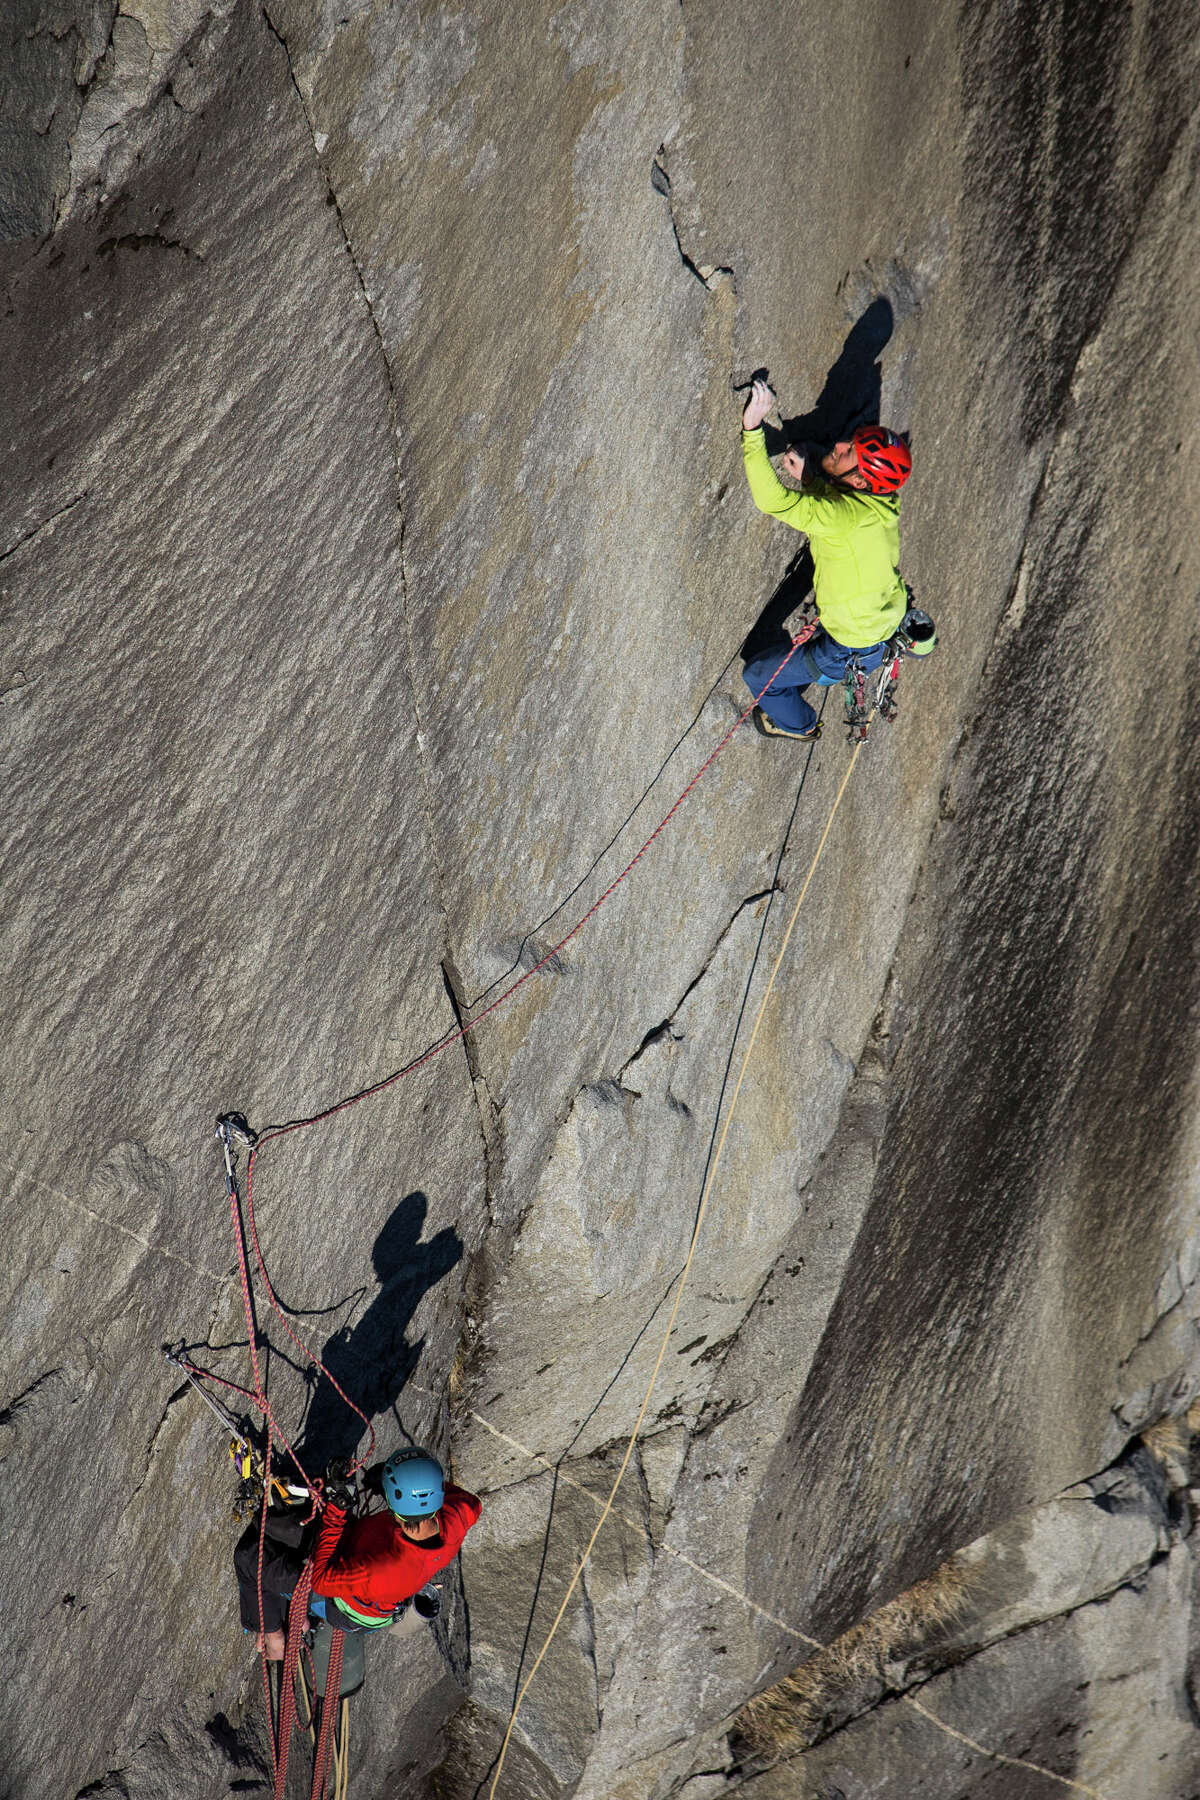 Tommy Caldwell (top) ascends the final pitch of the Dawn Wall on El Capitan, belayed by his climbing partner, Kevin Jorgeson, in Yosemite National Park in January. Using ropes as a safety measure only, Caldwell and Jorgeson became the first to climb by hand the 3,000-foot granite wall, an ascent they began Dec. 27.